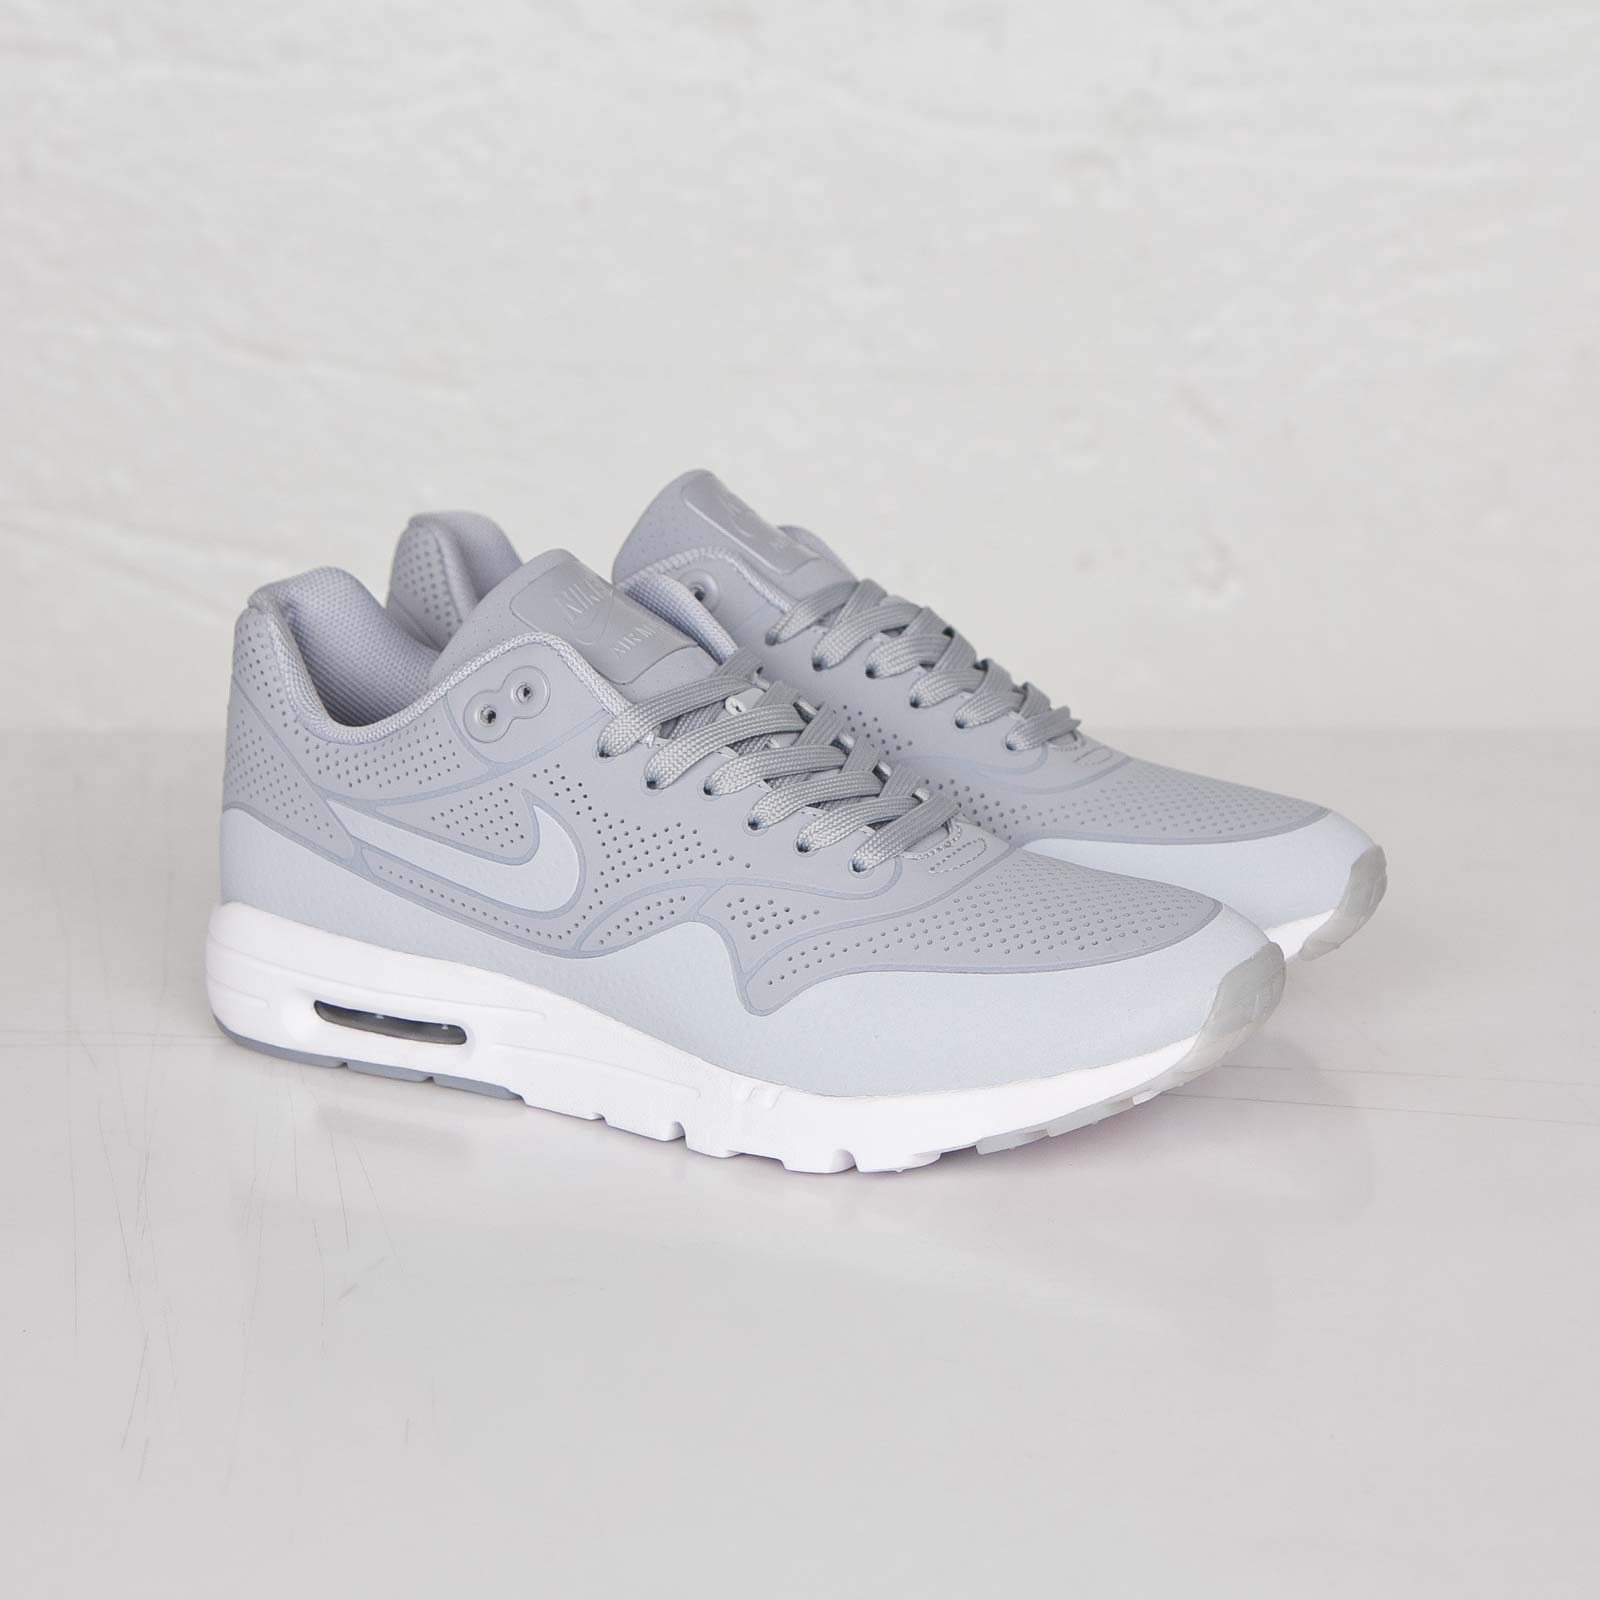 low cost cbe8a e4091 Nike Wmns Air Max 1 Ultra Moire